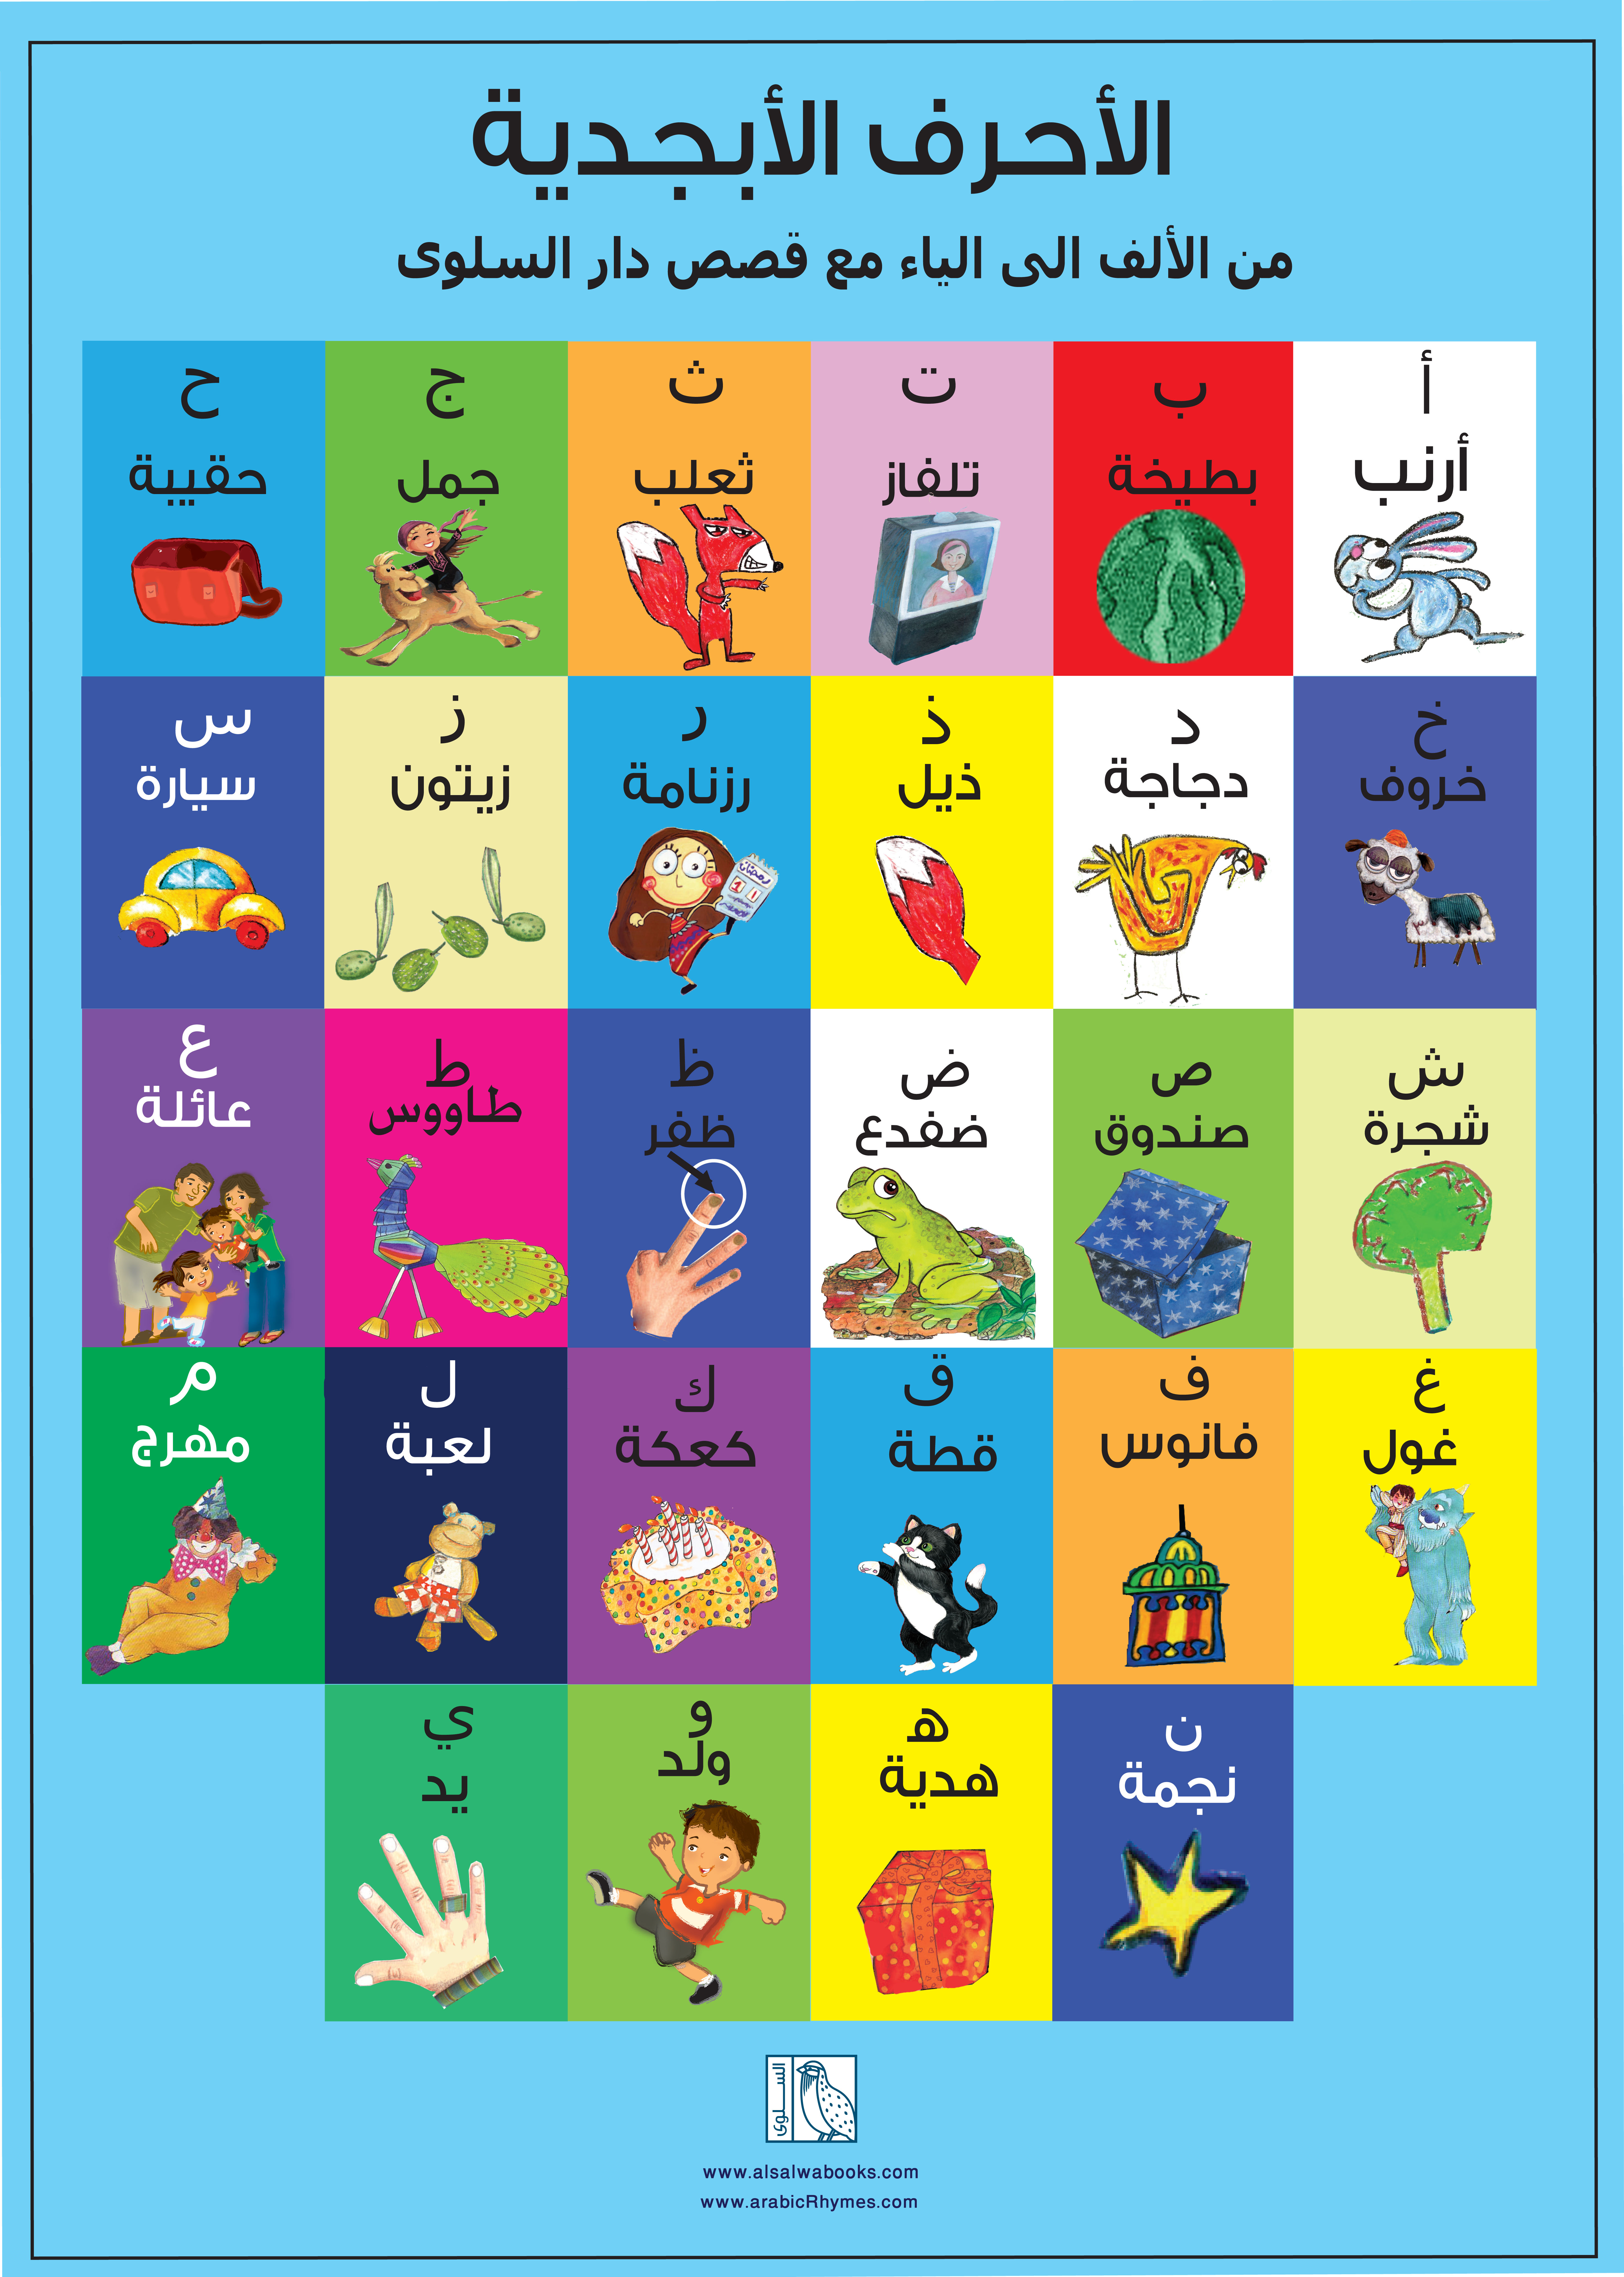 Free Arabic Alphabet Cliparts, Download Free Clip Art, Free with regard to Arabic Alphabet Poster Printable